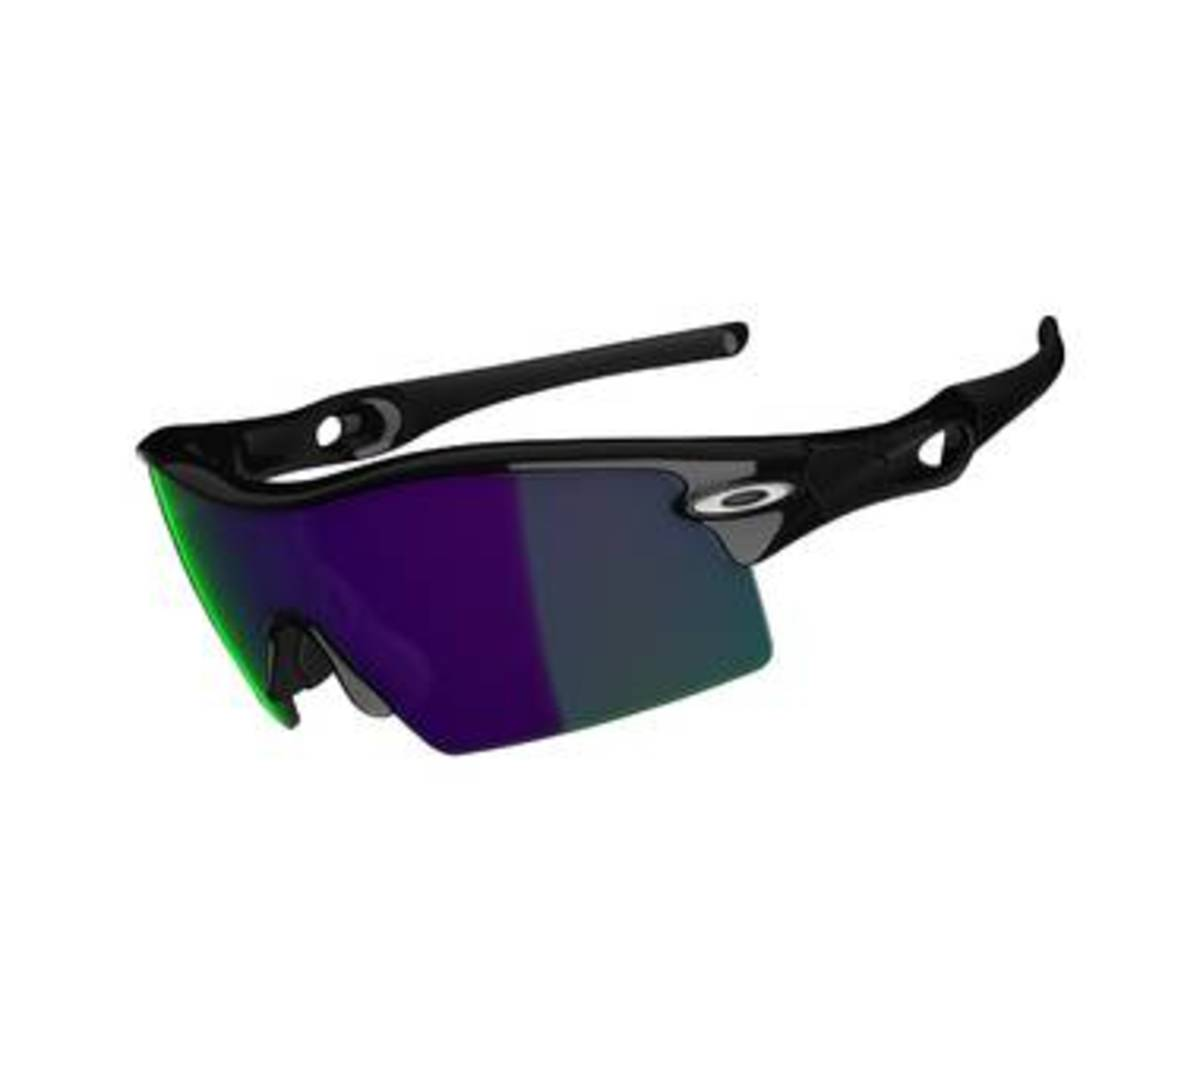 ab2639bd9cd How to tell if   Spot Fake or real Oakley Sunglasses   are fake Oakleys